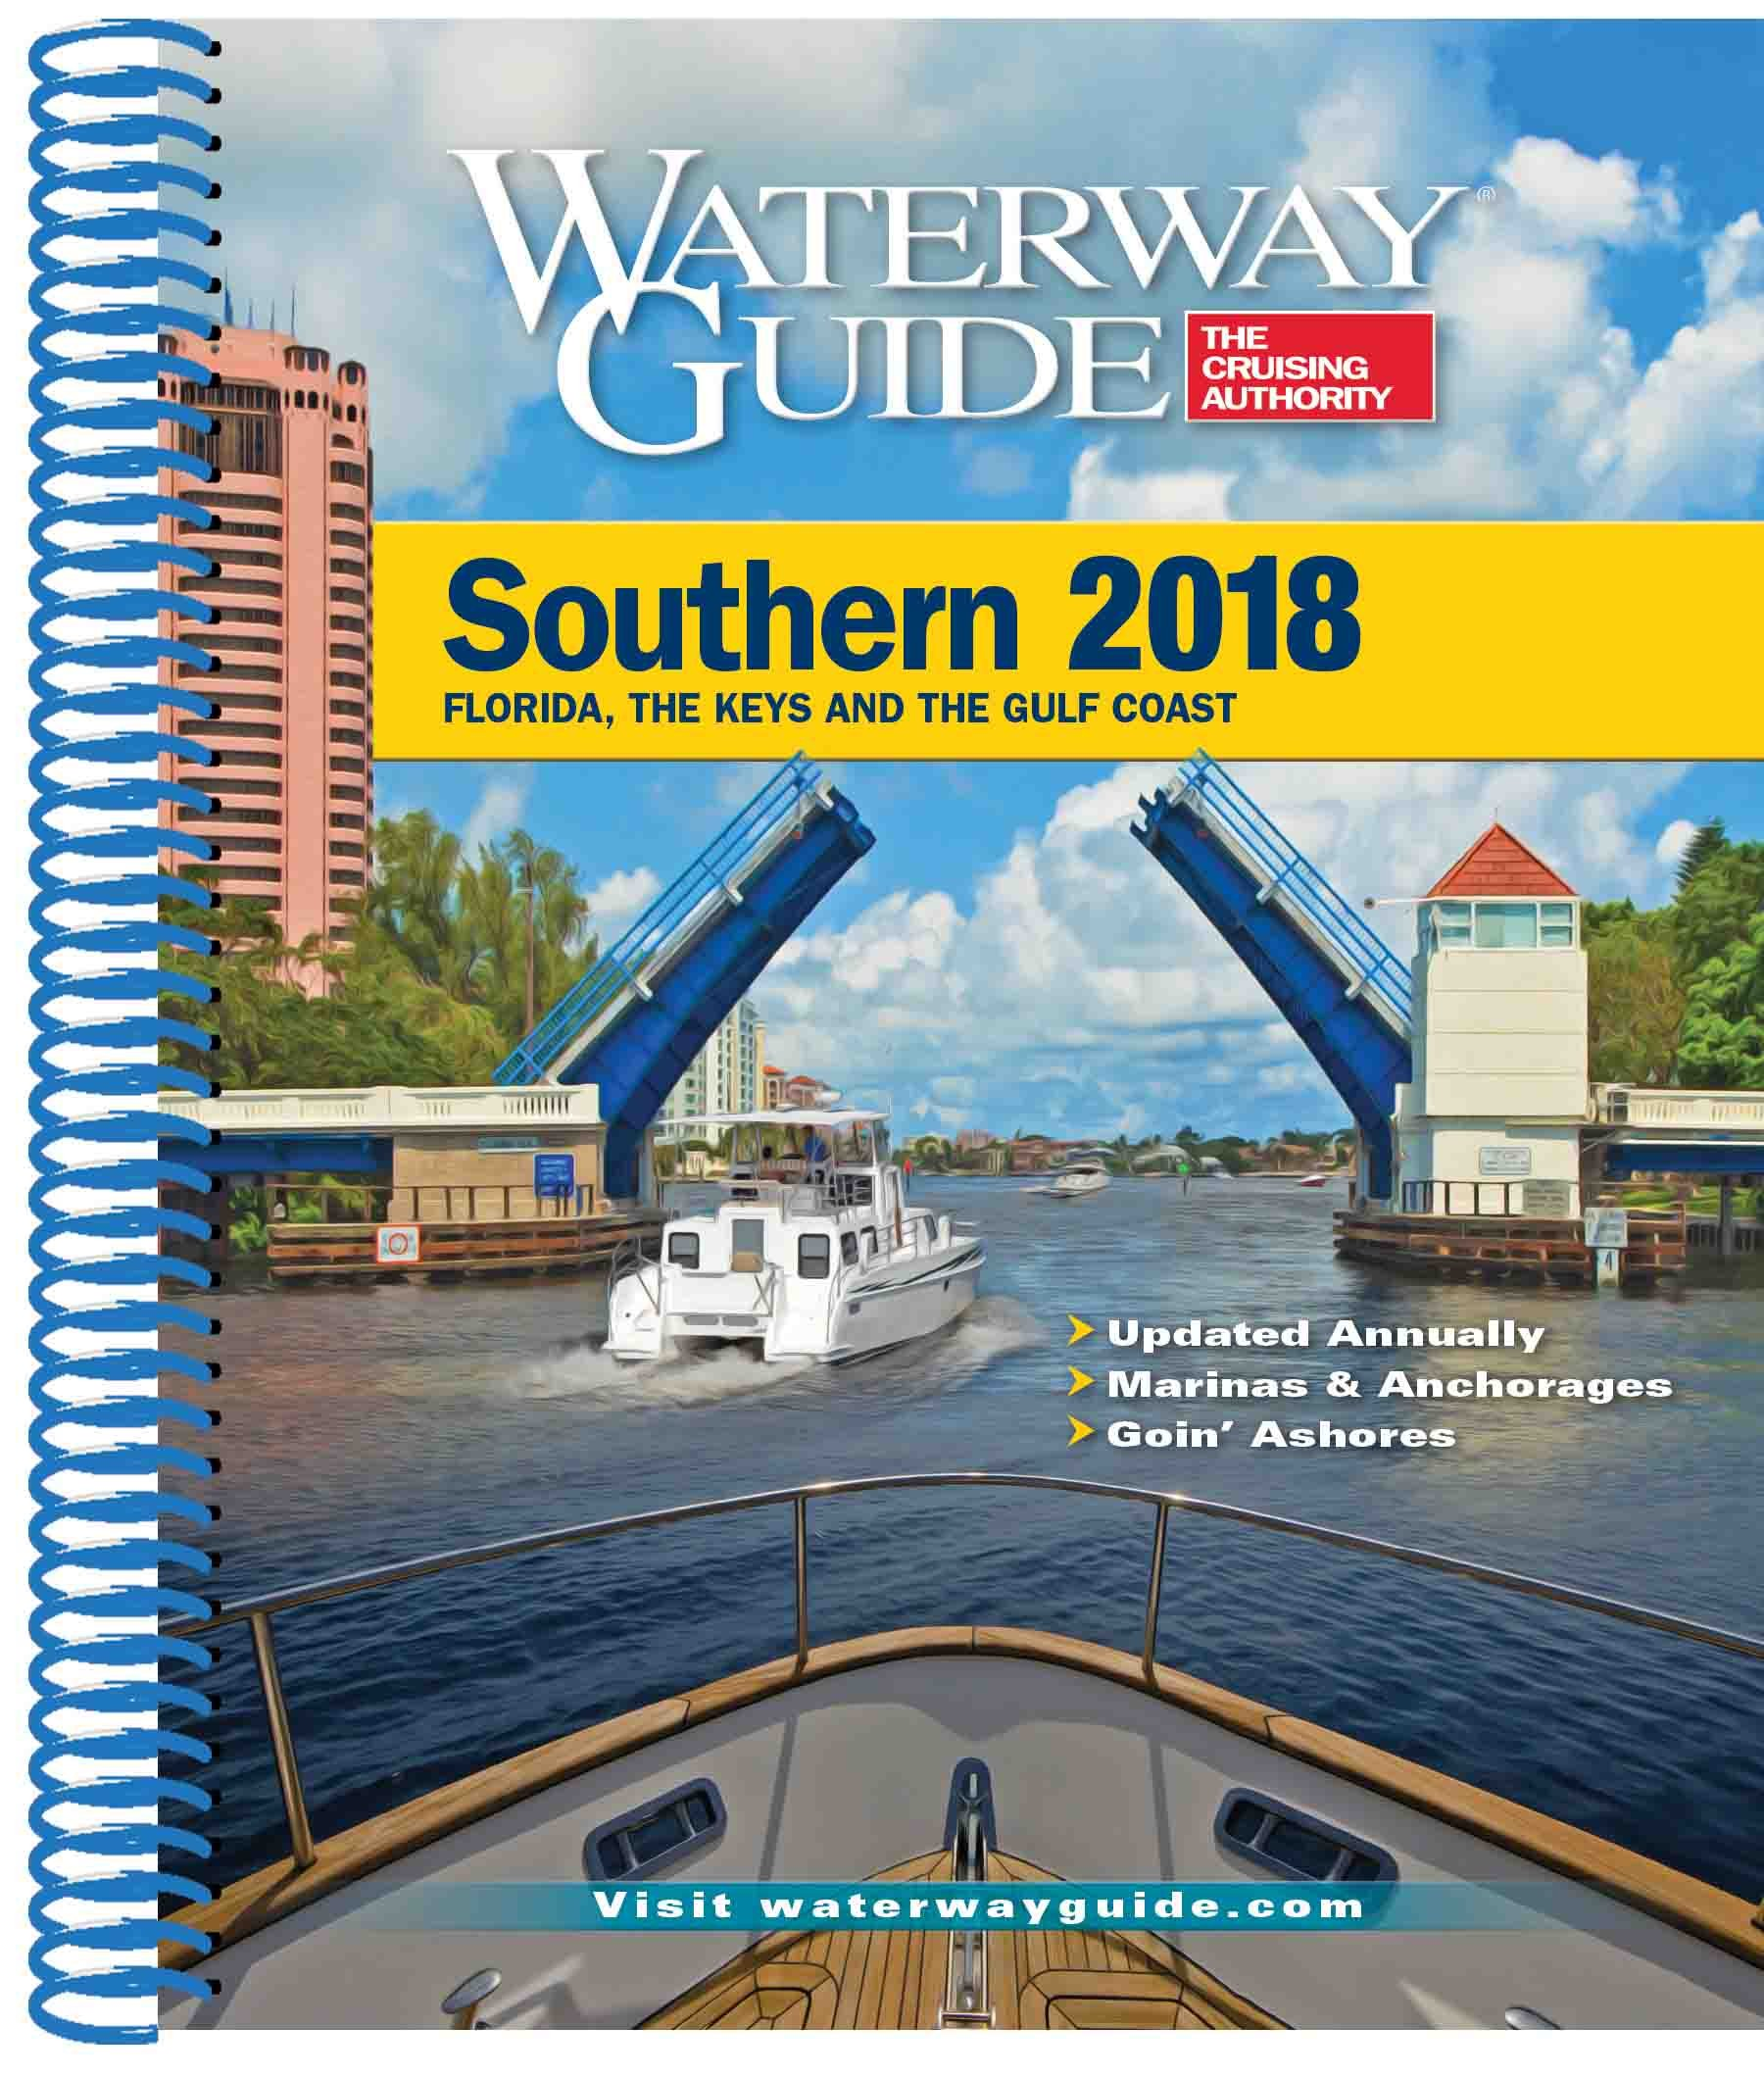 Waterway Guide Southern 2018: Florida, the Keys and the Gulf Coast ebook